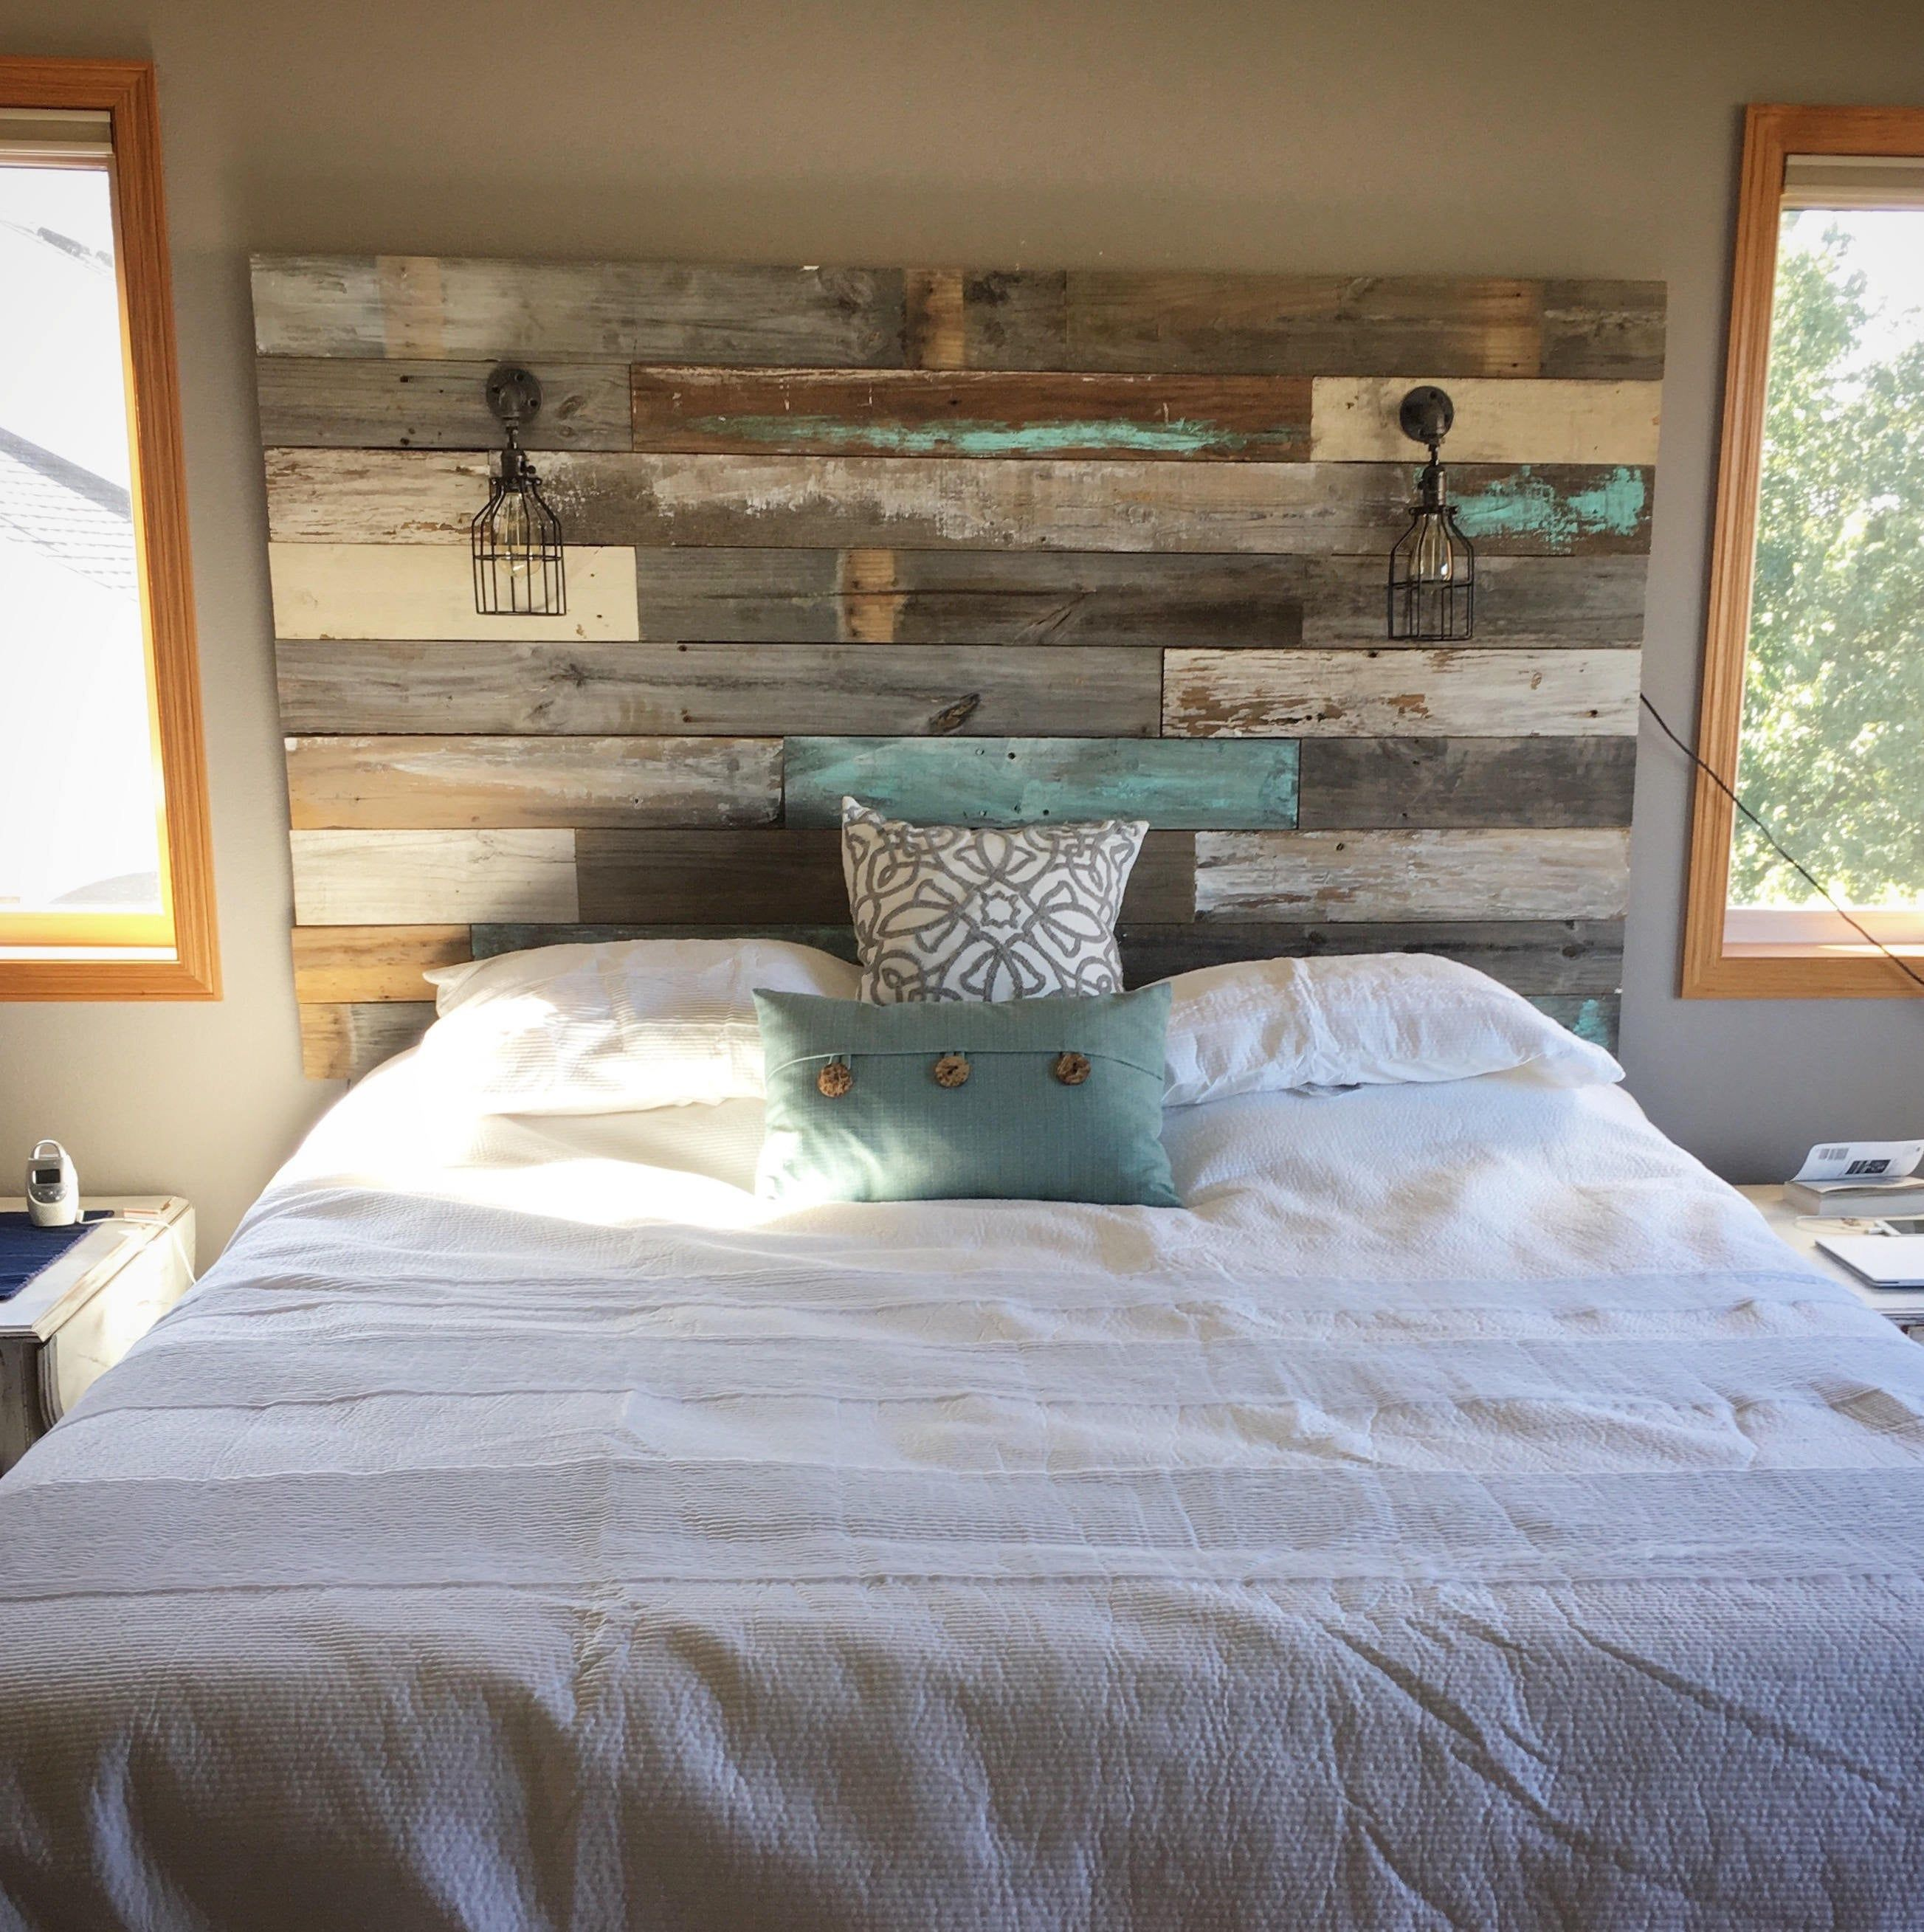 Farmhouse Rustic Chippy Paint Cottage Whitewashed Grey Blue Headboard Bed Distressed Wood King Queen Full Twin Lights In 2019 Reclaimed Wood Headboard Wood Headboard Headboards For Beds